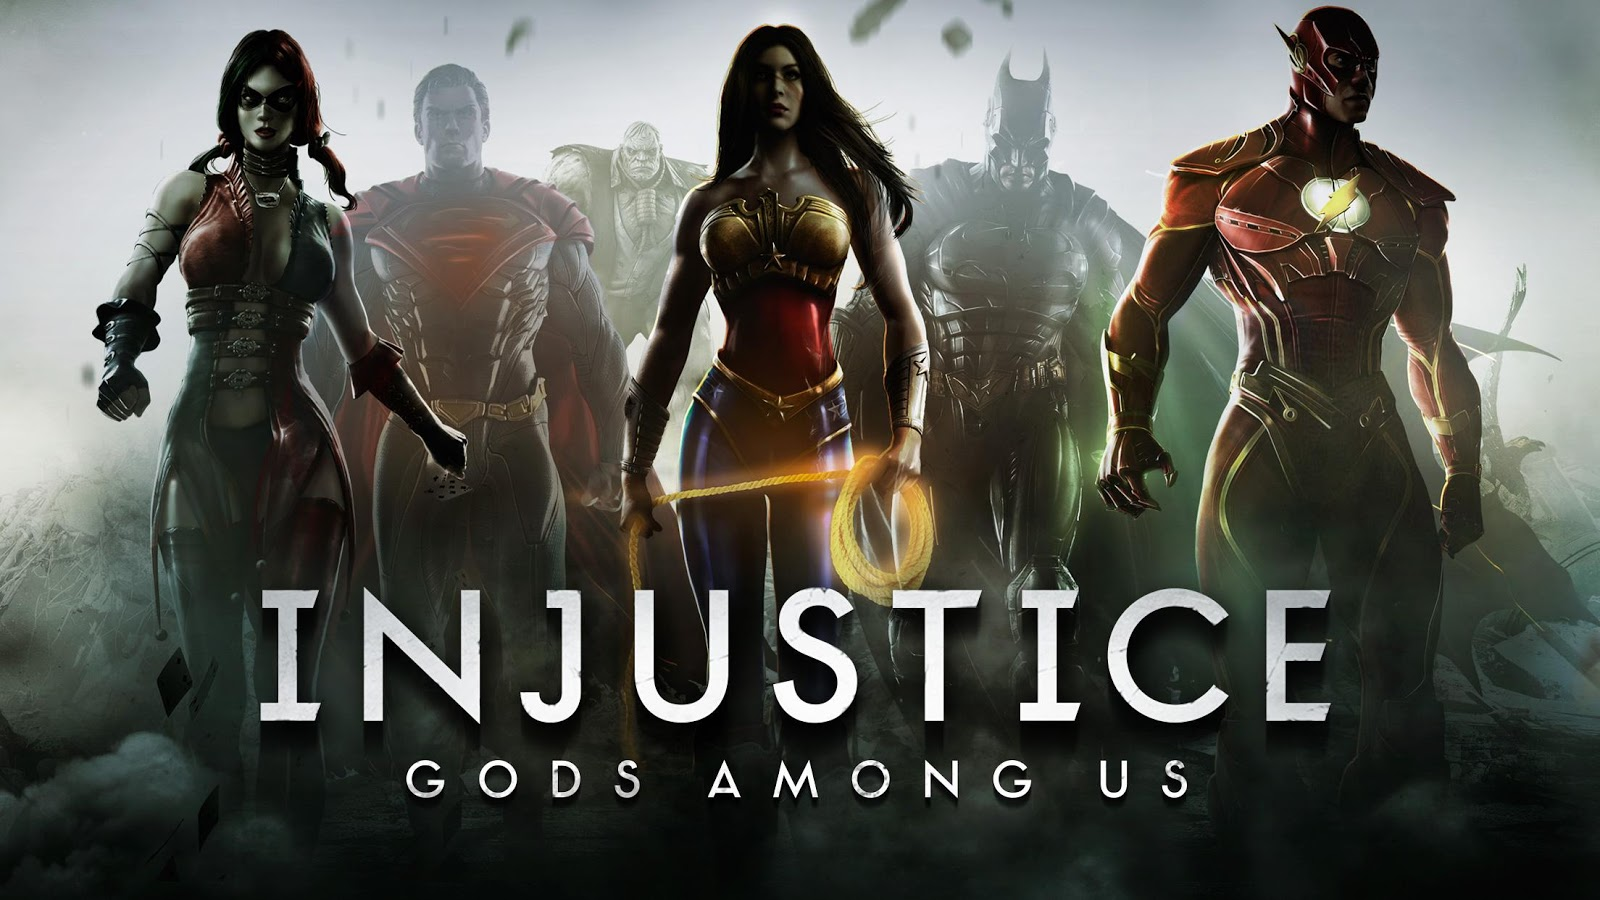 Injustice Gods Among Us Wallpapers Comics Hq Injustice Gods Among Us Pictures 4k Wallpapers 2019